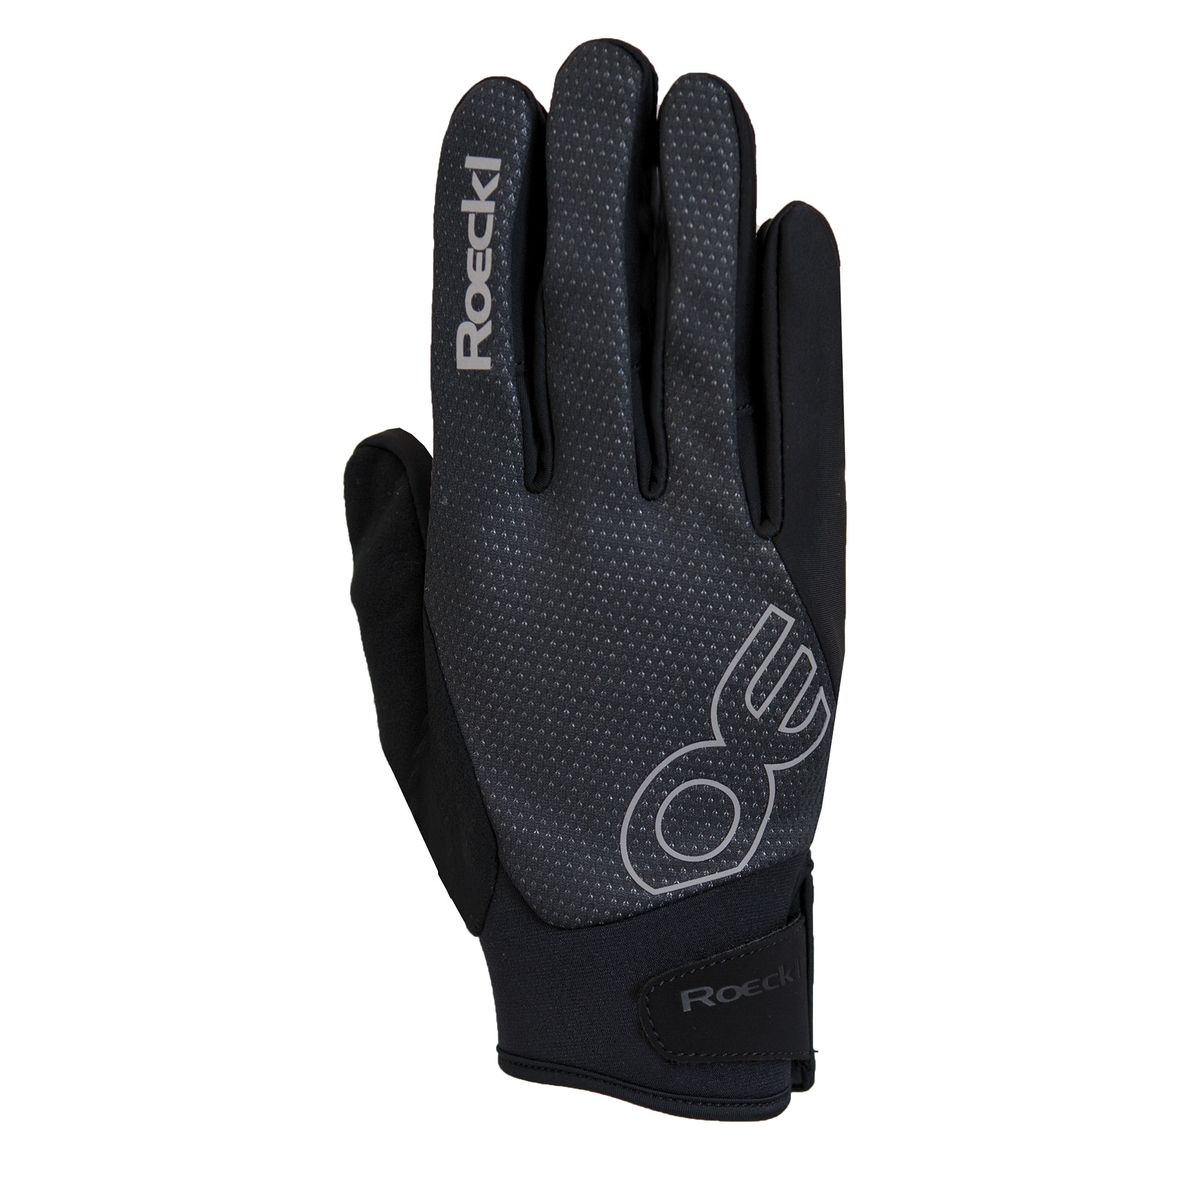 Riga full finger gloves